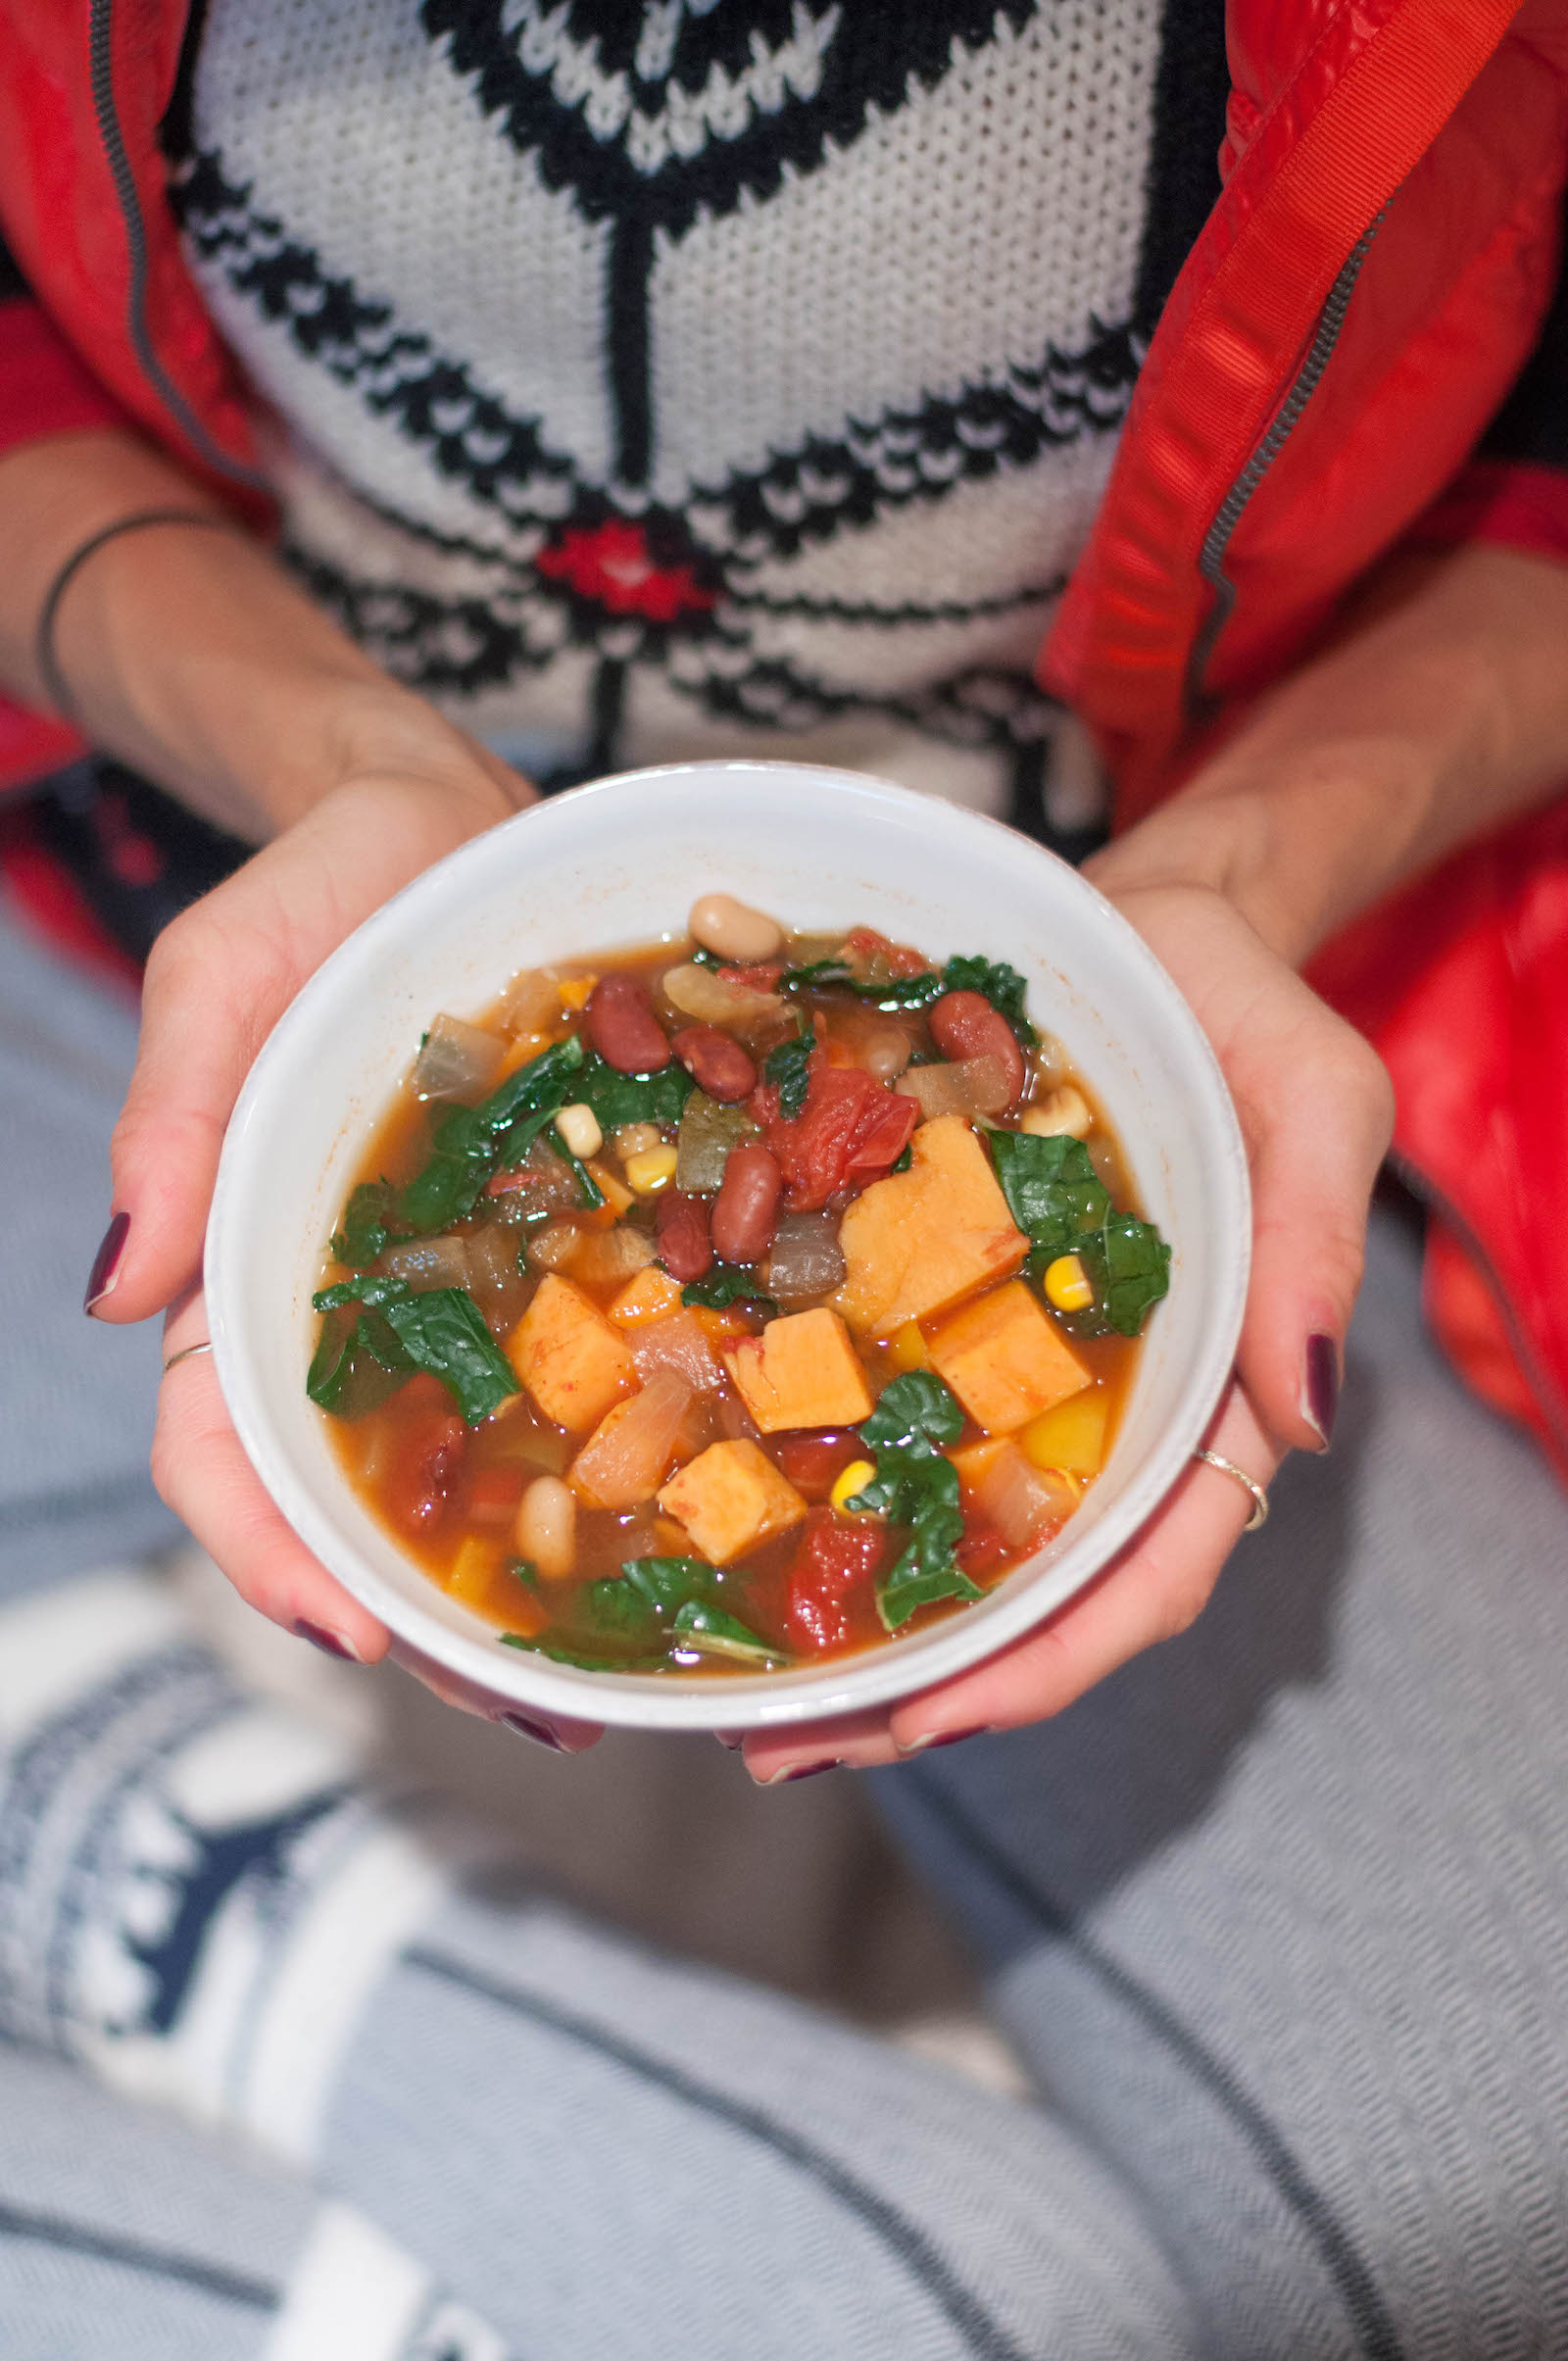 Erin Stanczyk | Lifestyle Design | eat.move.rest. | Hearty Holiday Kale & Sweet Potato Veggie Chili